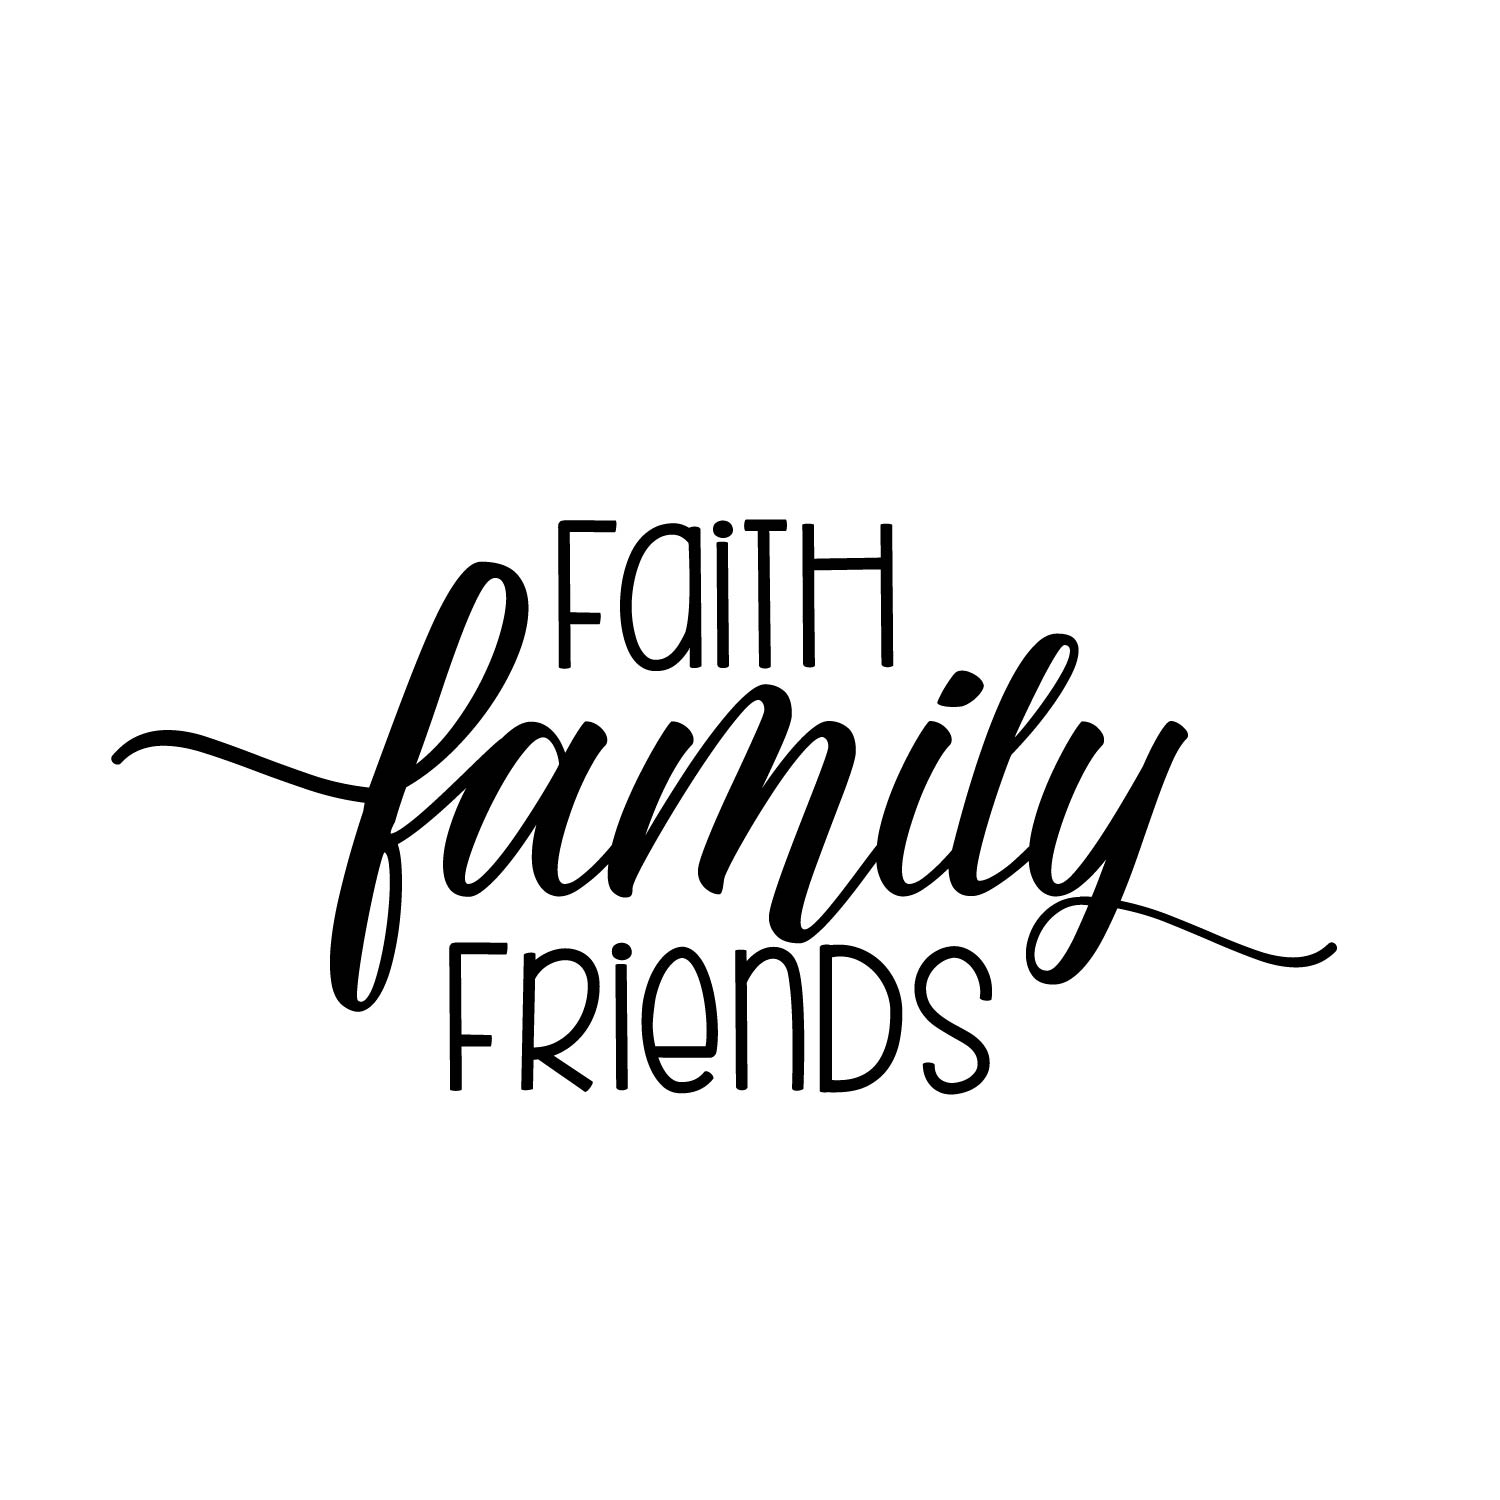 11 - Faith Family Friends